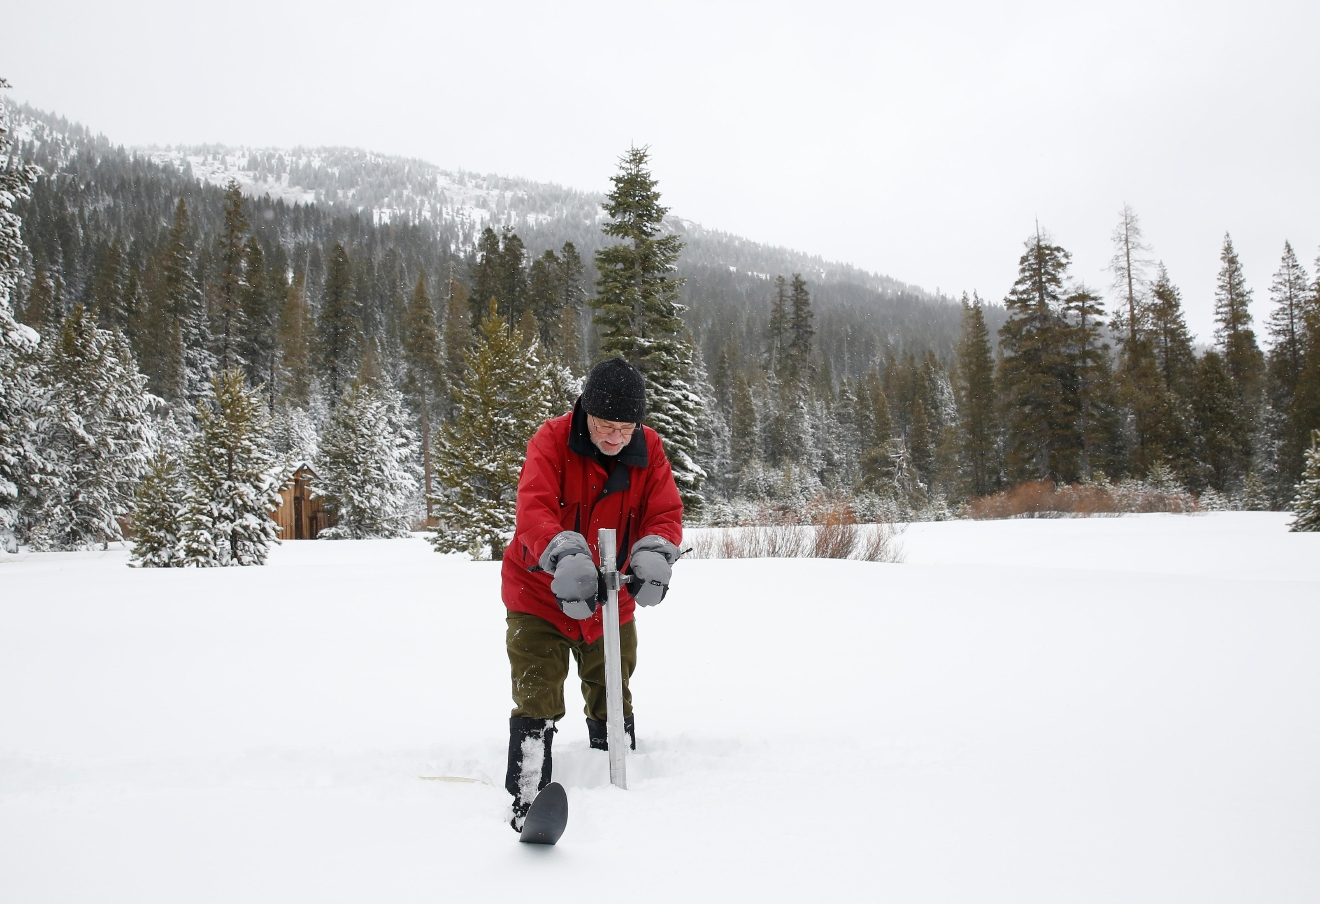 FILE - In this Jan. 3, 2017, file photo, Frank Gehrke, chief of the California Cooperative Snow Surveys Program for the Department of Water Resources, plunges the survey tube into the snowpack as he conducts the first snow survey of the season at Phillips Station near Echo Summit, Calif.  More than 40 percent of California has emerged from a punishing drought that covered the whole state a year ago, federal drought-watchers said Thursday, Jan. 12,   a stunning transformation caused by an unrelenting series of storms in the North that filled lakes, overflowed rivers and buried mountains in snow. (AP Photo/Rich Pedroncelli, File)